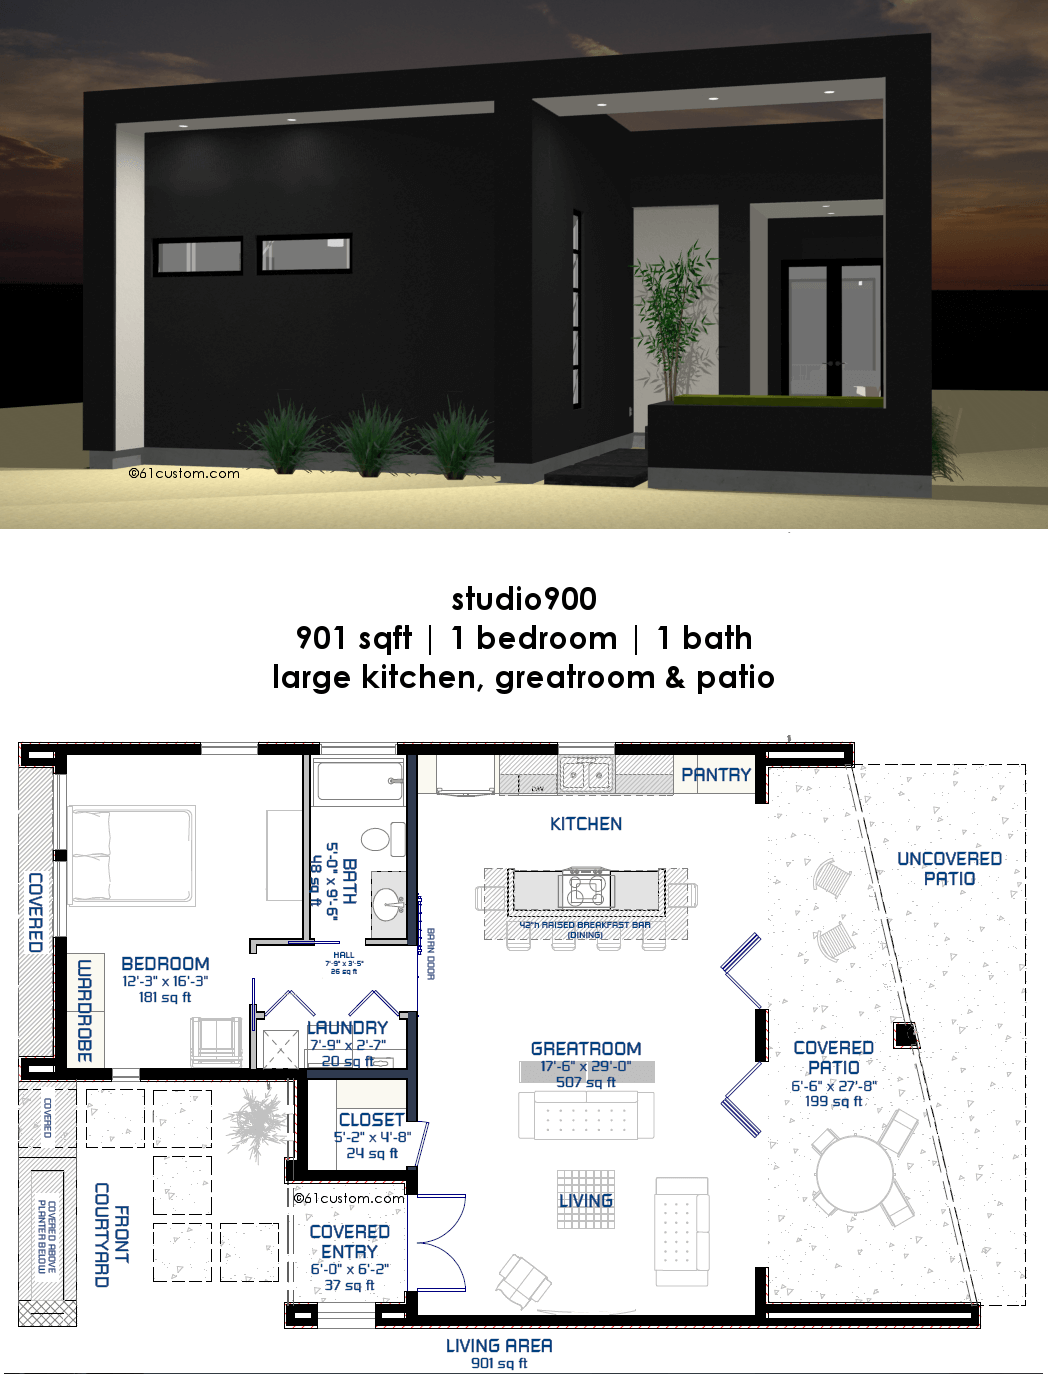 Modernist House Plans Studio900 Small Modern House Plan With Courtyard 61custom